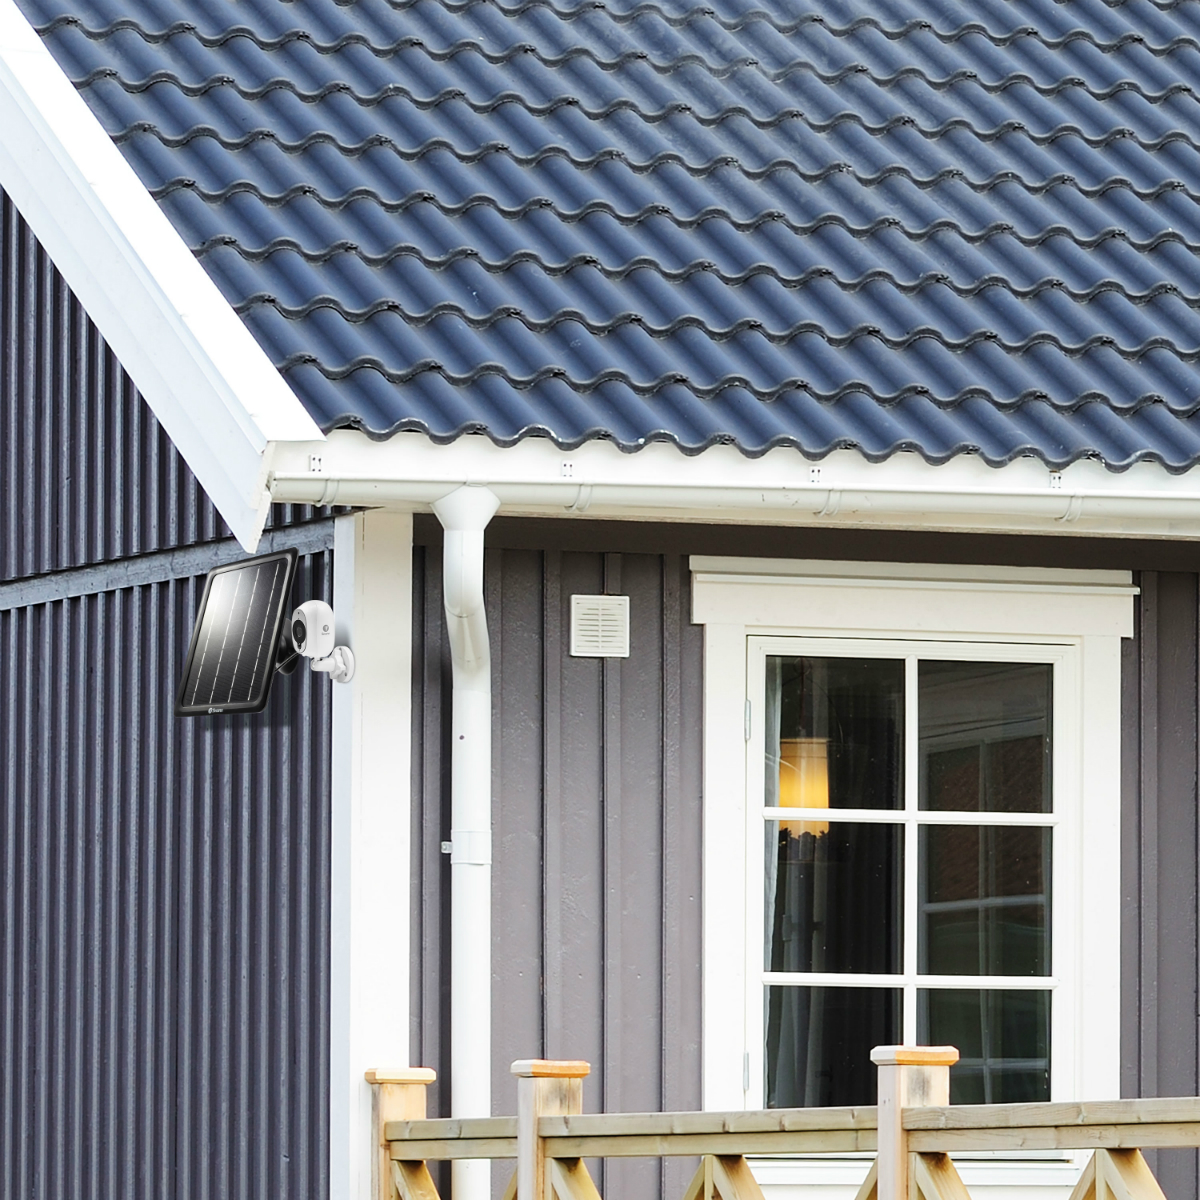 Swann Releases Solar Panel For Security Cameras - SmartHouse